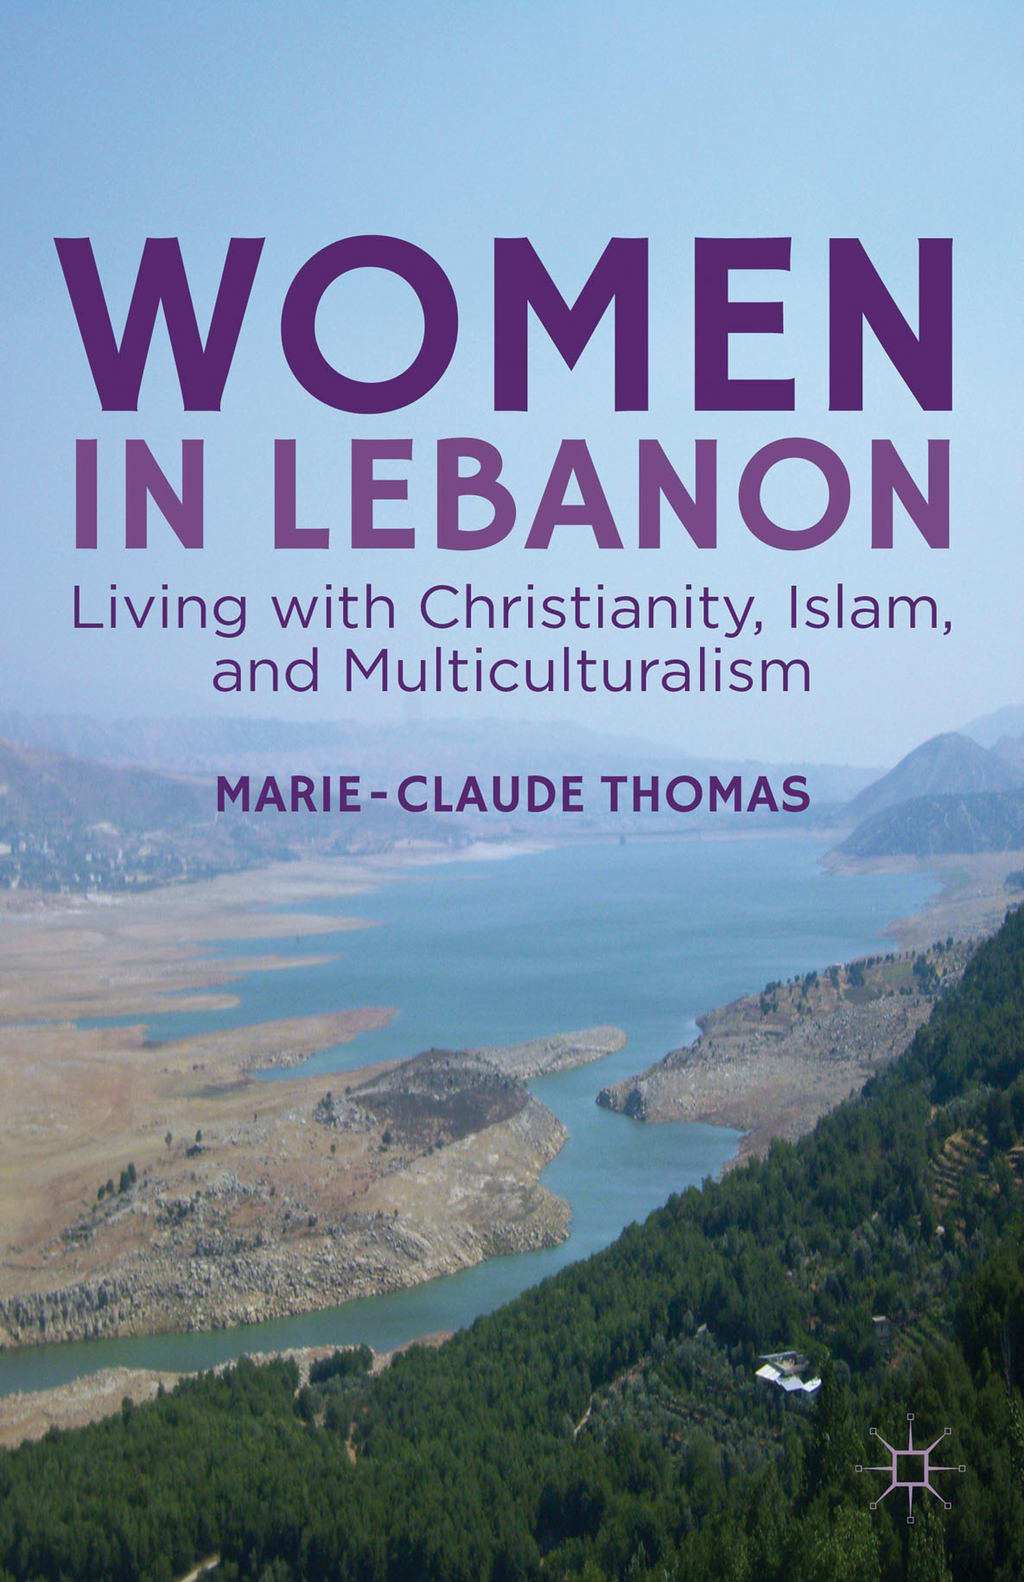 Women in Lebanon Living with Christianity,  Islam,  and Multiculturalism